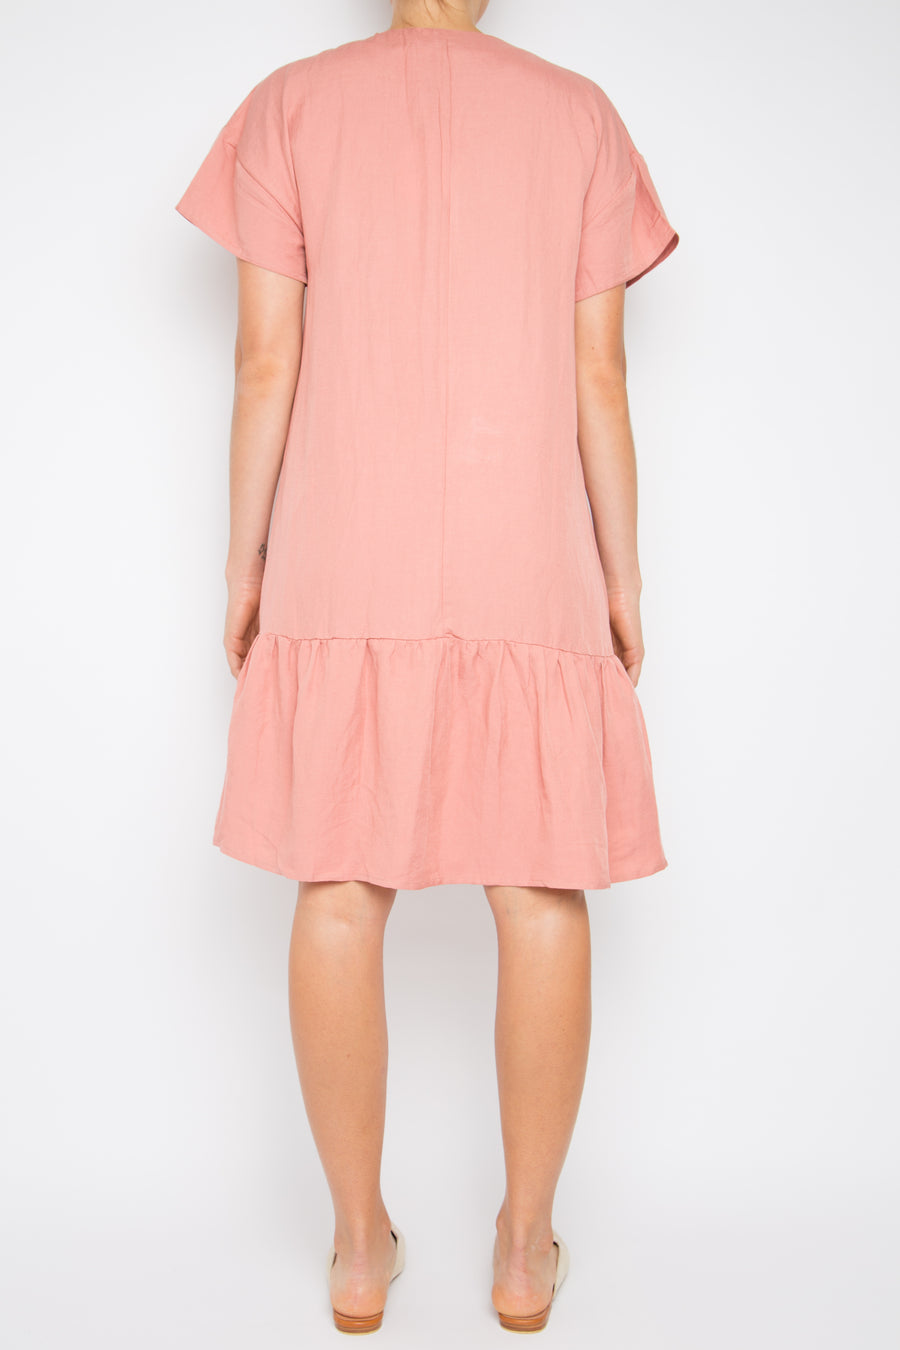 Hululu Dress in Terracotta